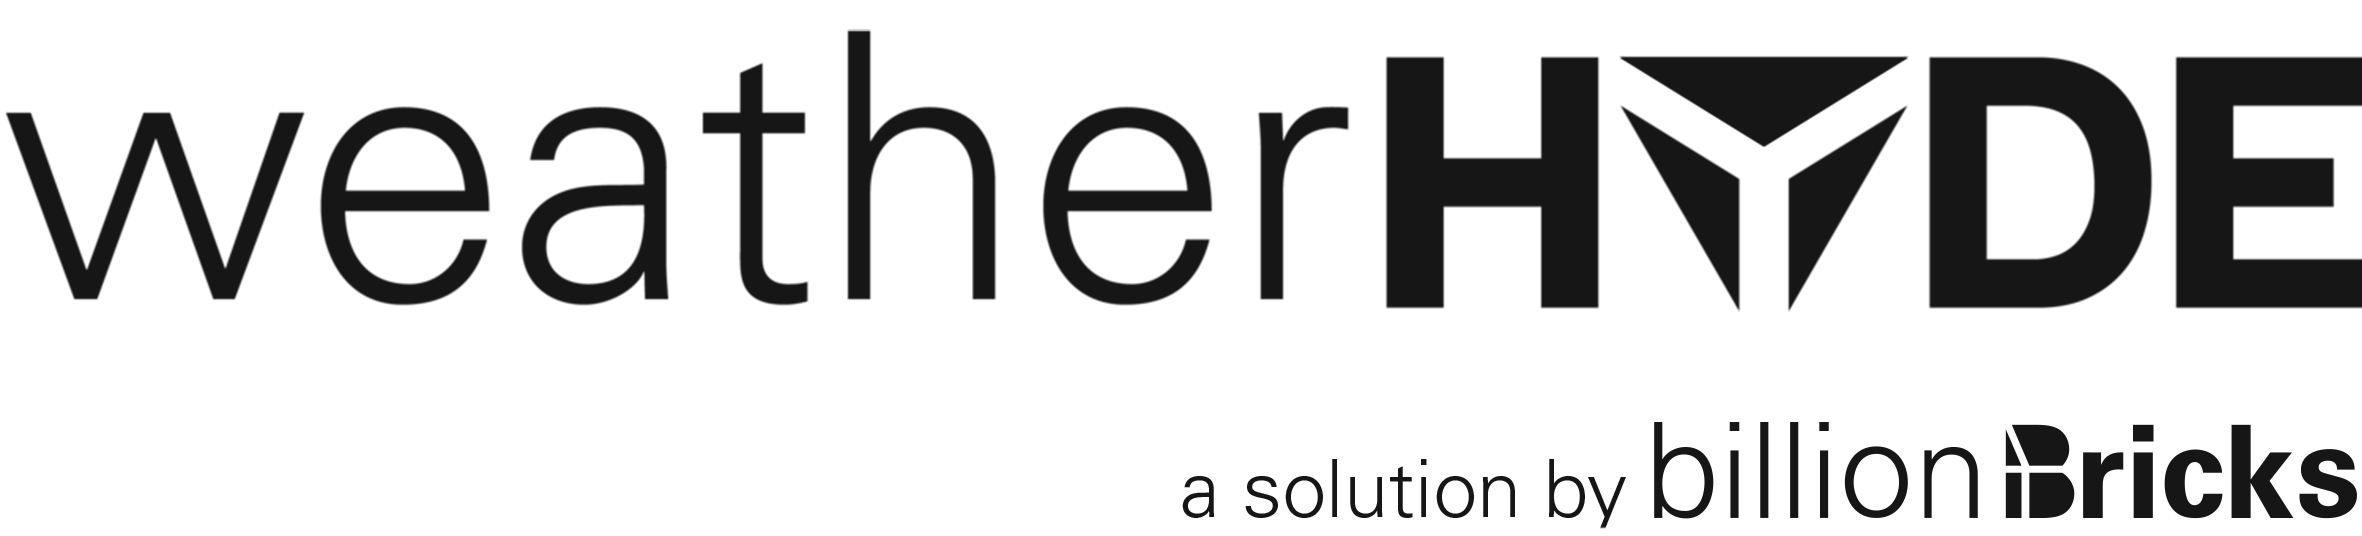 logo on tent 20-4,50,1.png